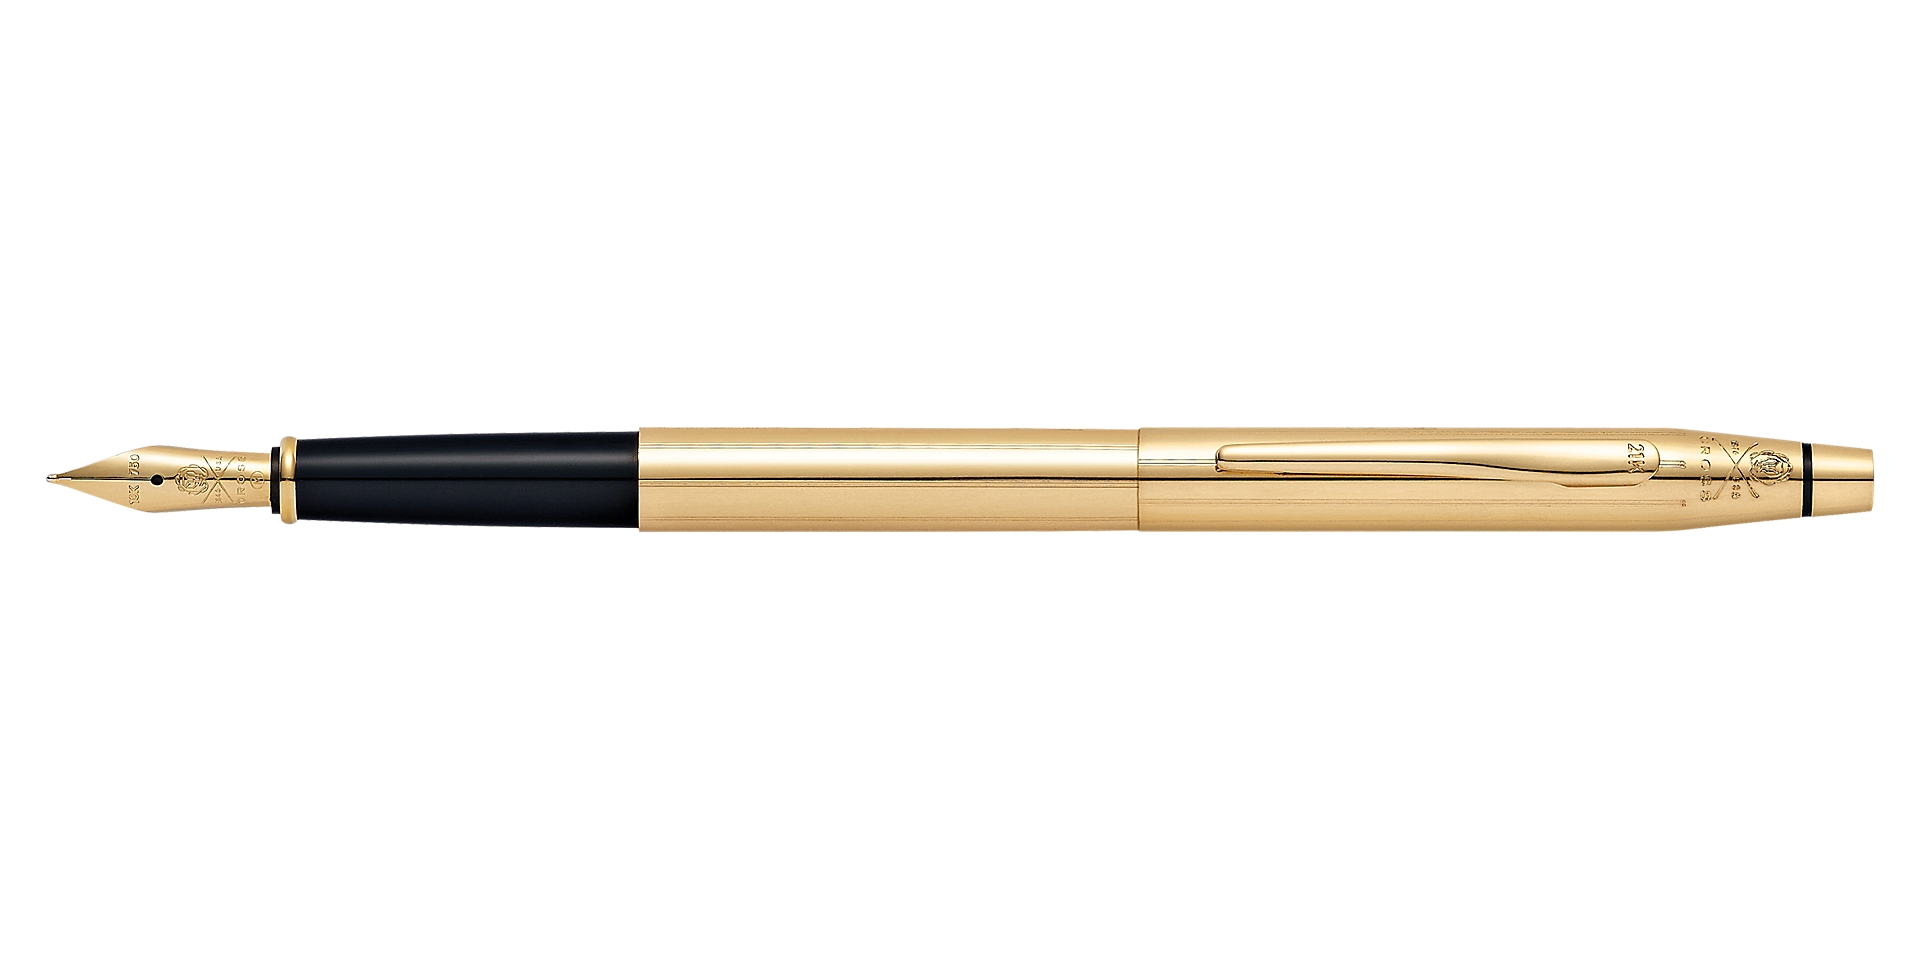 Cross 21st Century Limited-Edition 21 Karat Solid-Gold Fountain Pen Picture